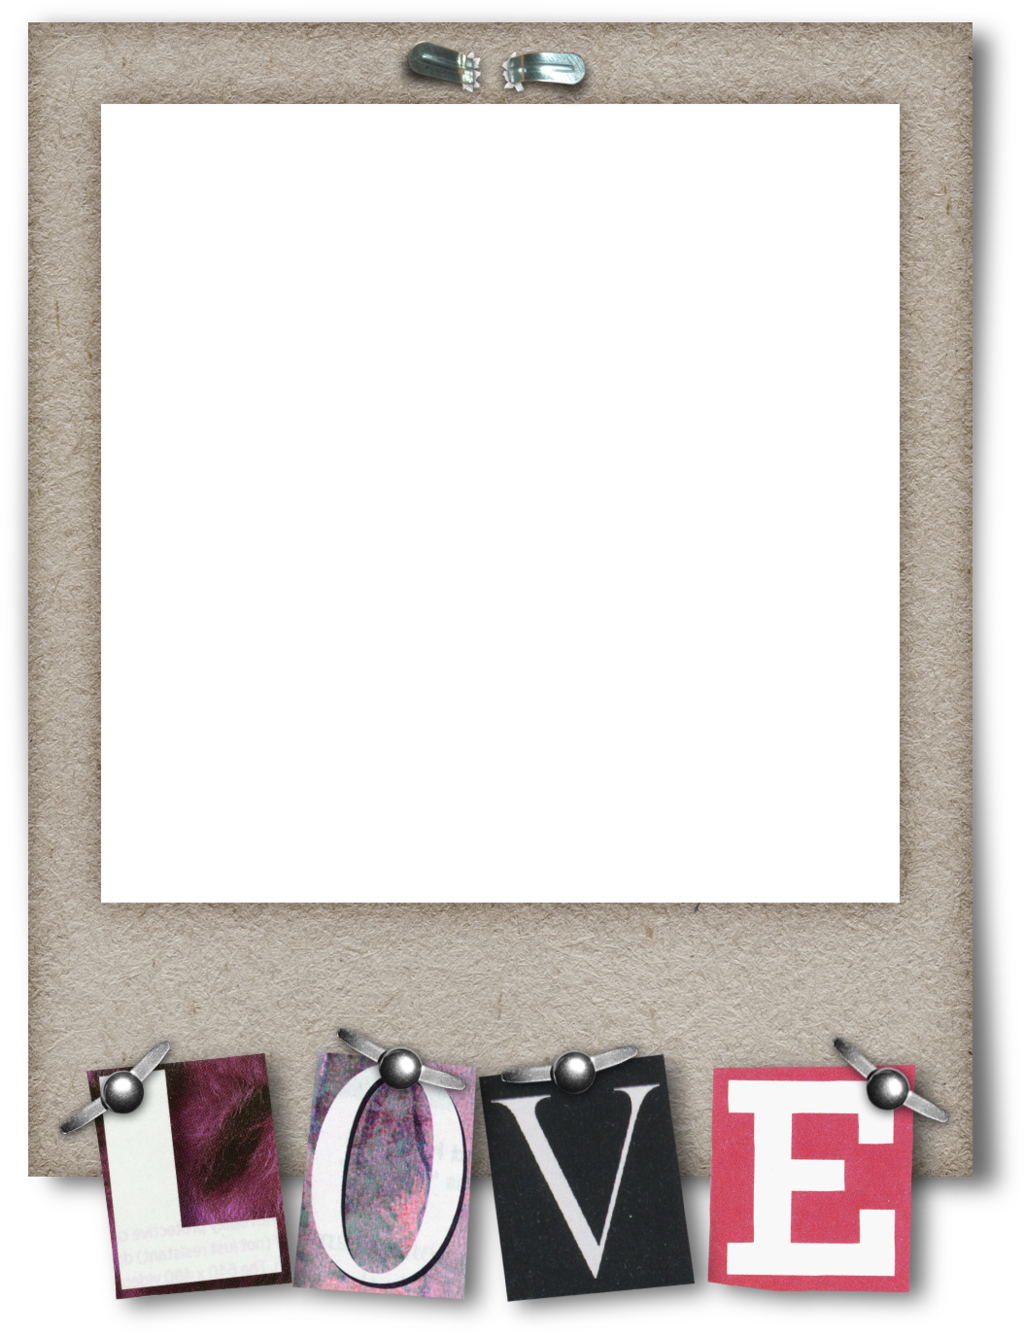 Vintage polaroid frame png. Love by hggraphicdesigns on